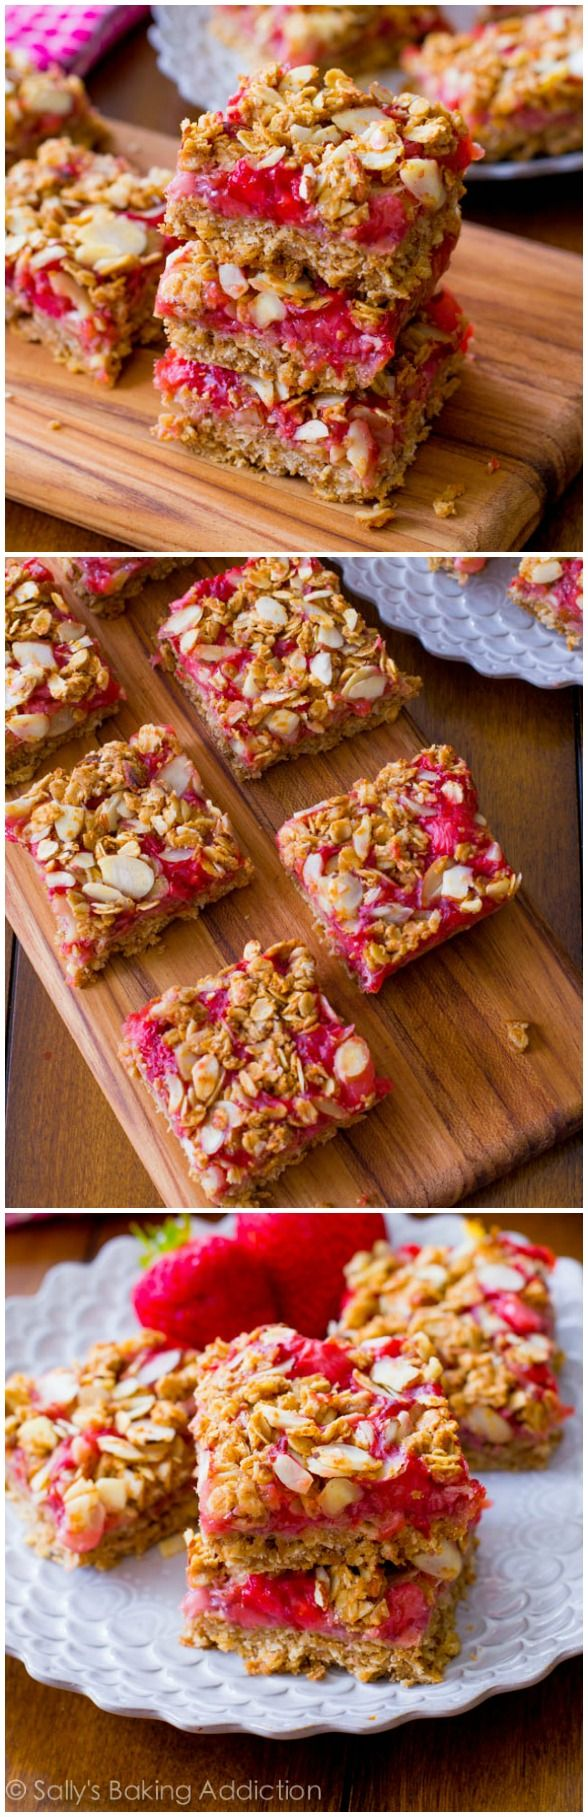 easy snack bars that can be nut-free. Gluten-free, no butter, no oil, and made with 100% good for you ingredients.